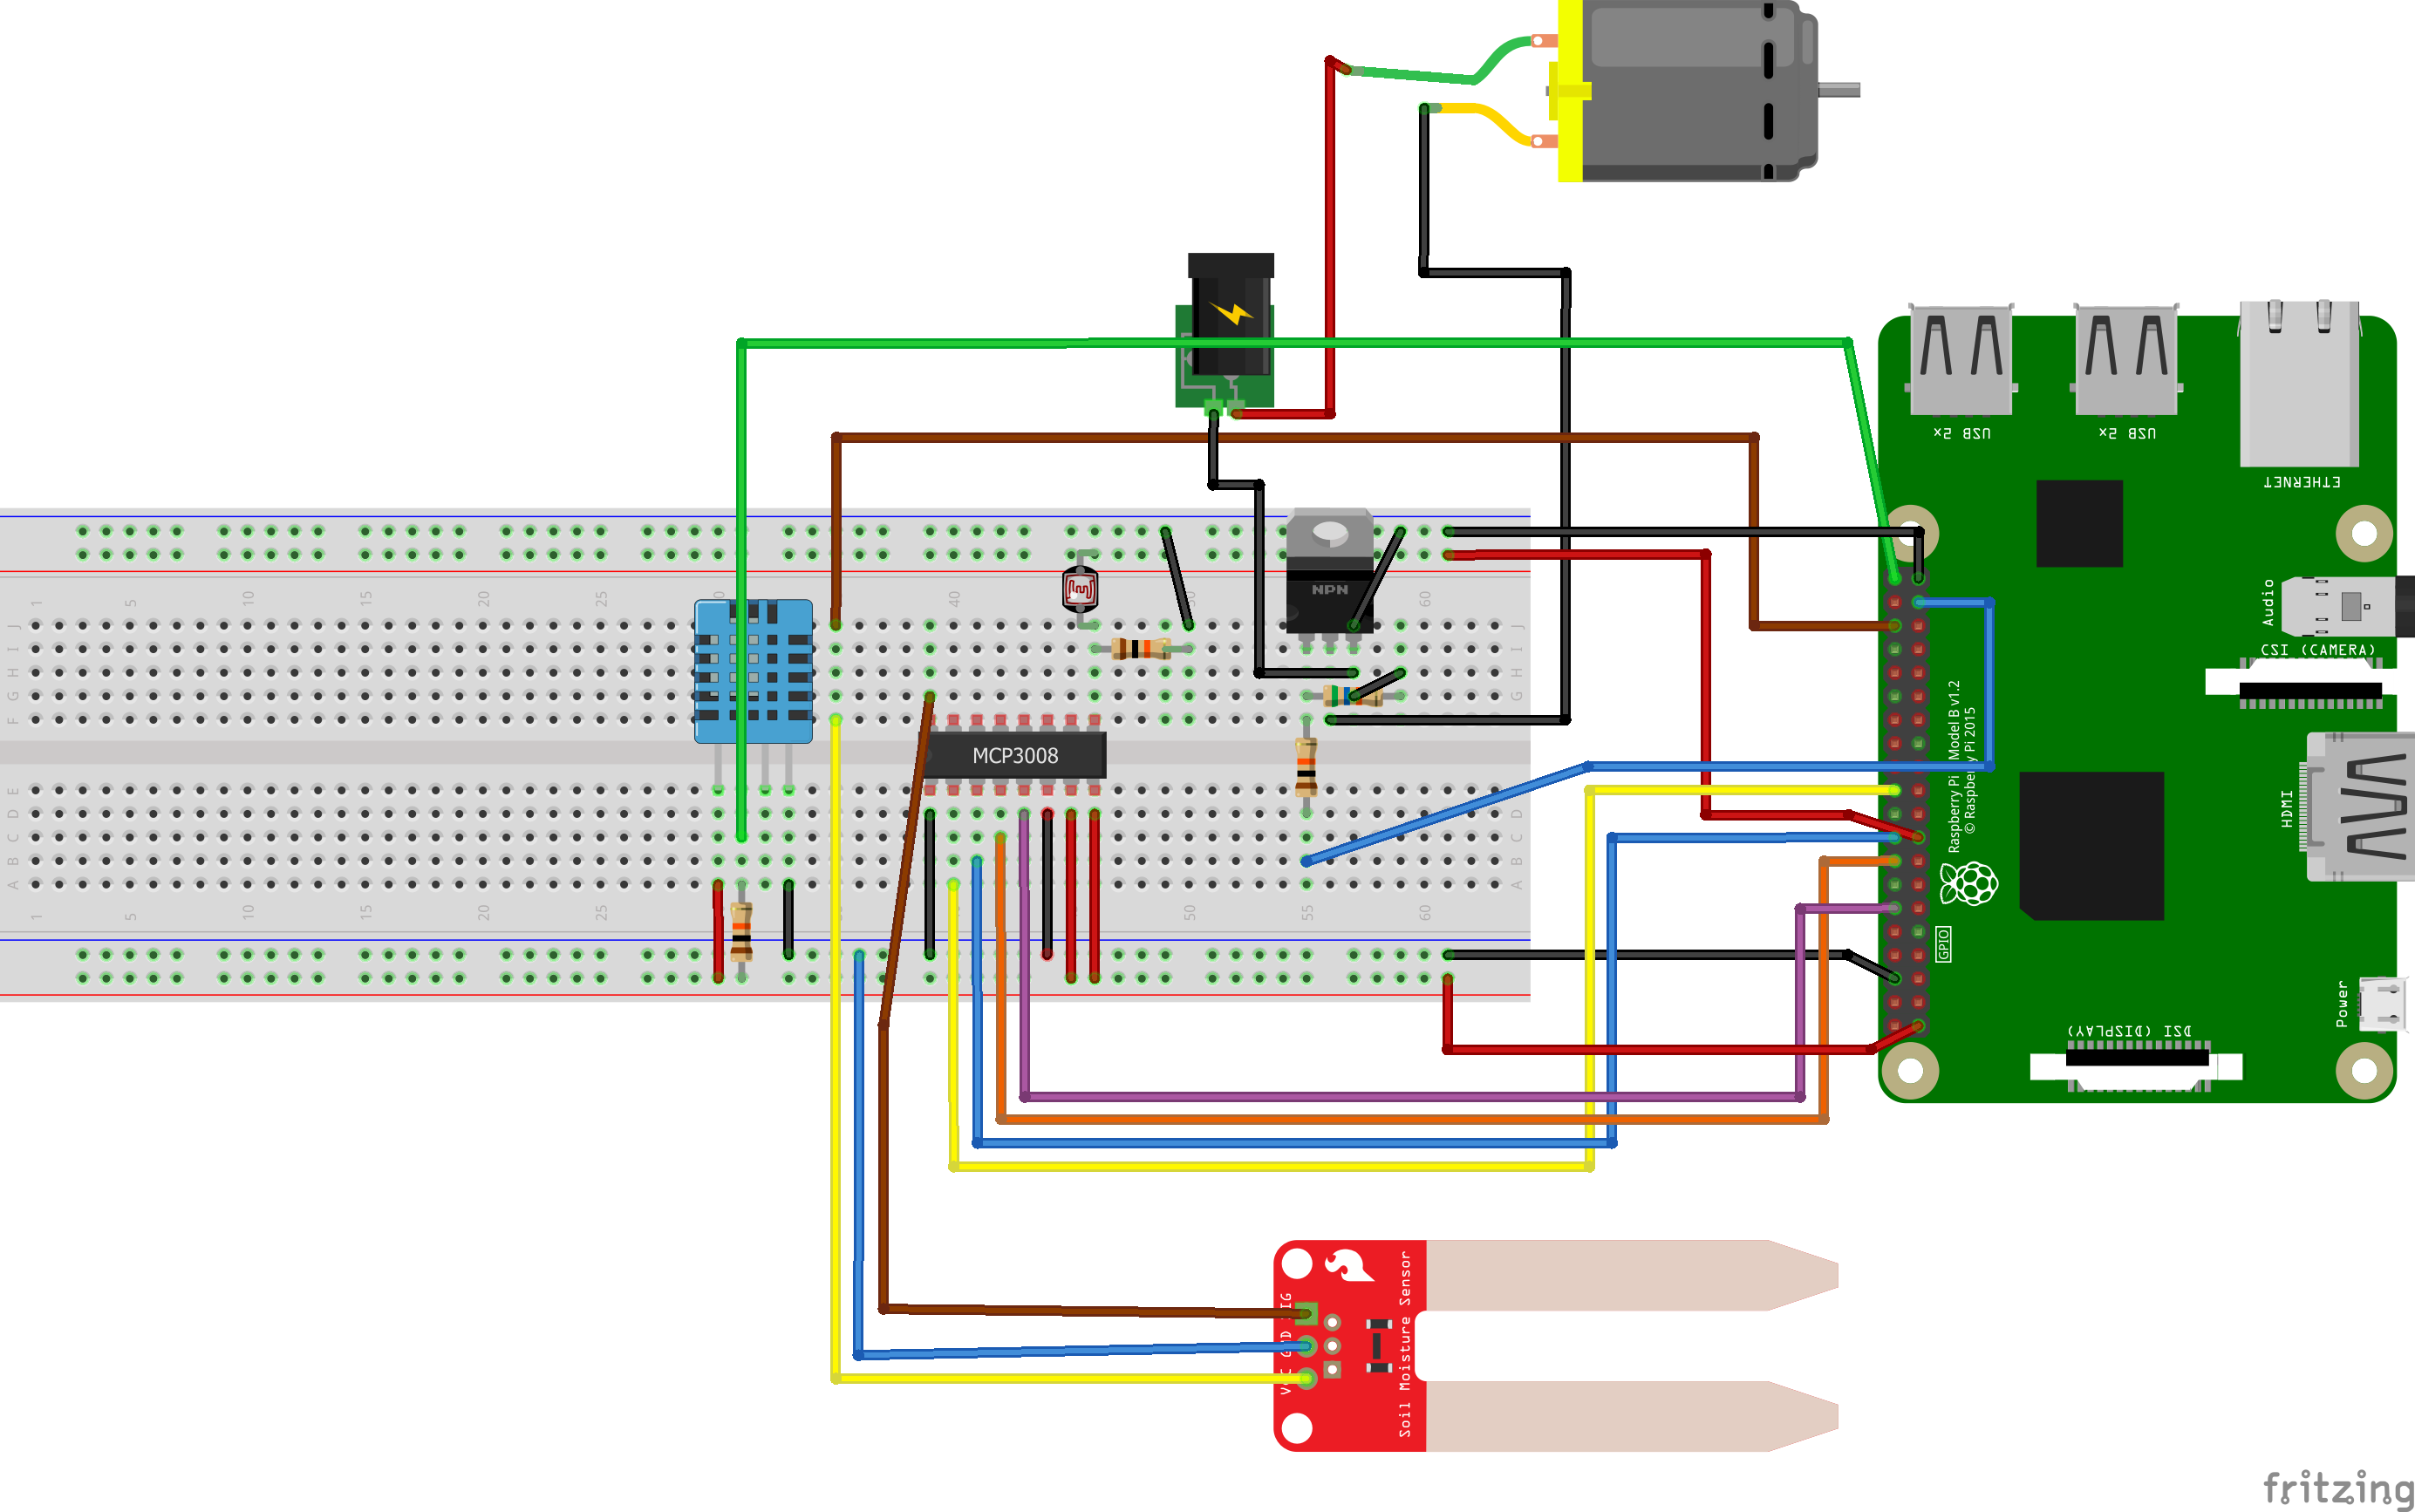 Singer Heat Pump Wiring Diagram : Singer air handler wiring diagram